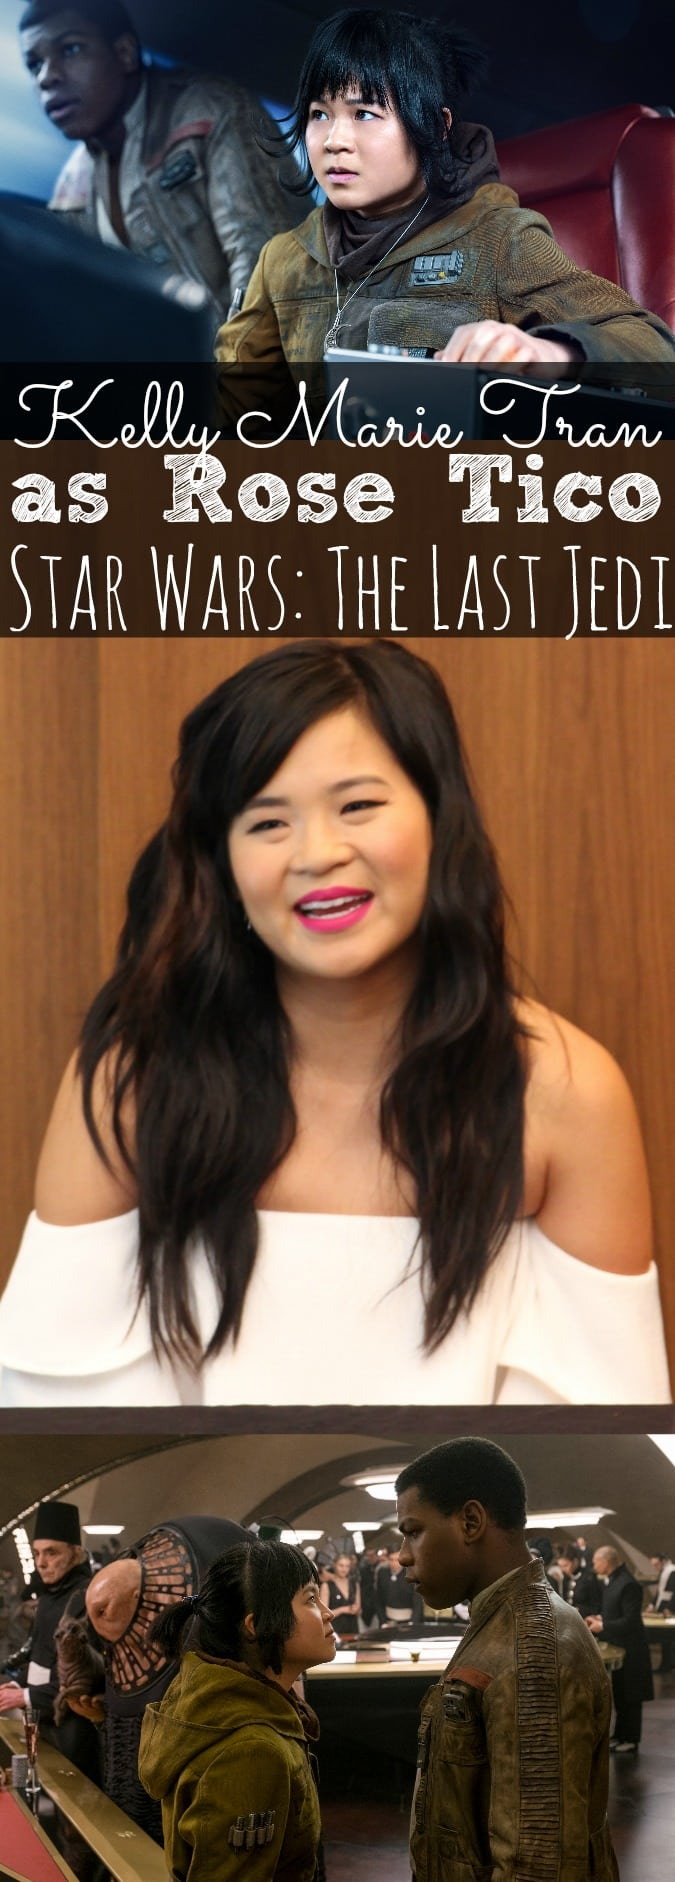 Interview with Kelly Marie Tran on Star Wars: The Last Jedi